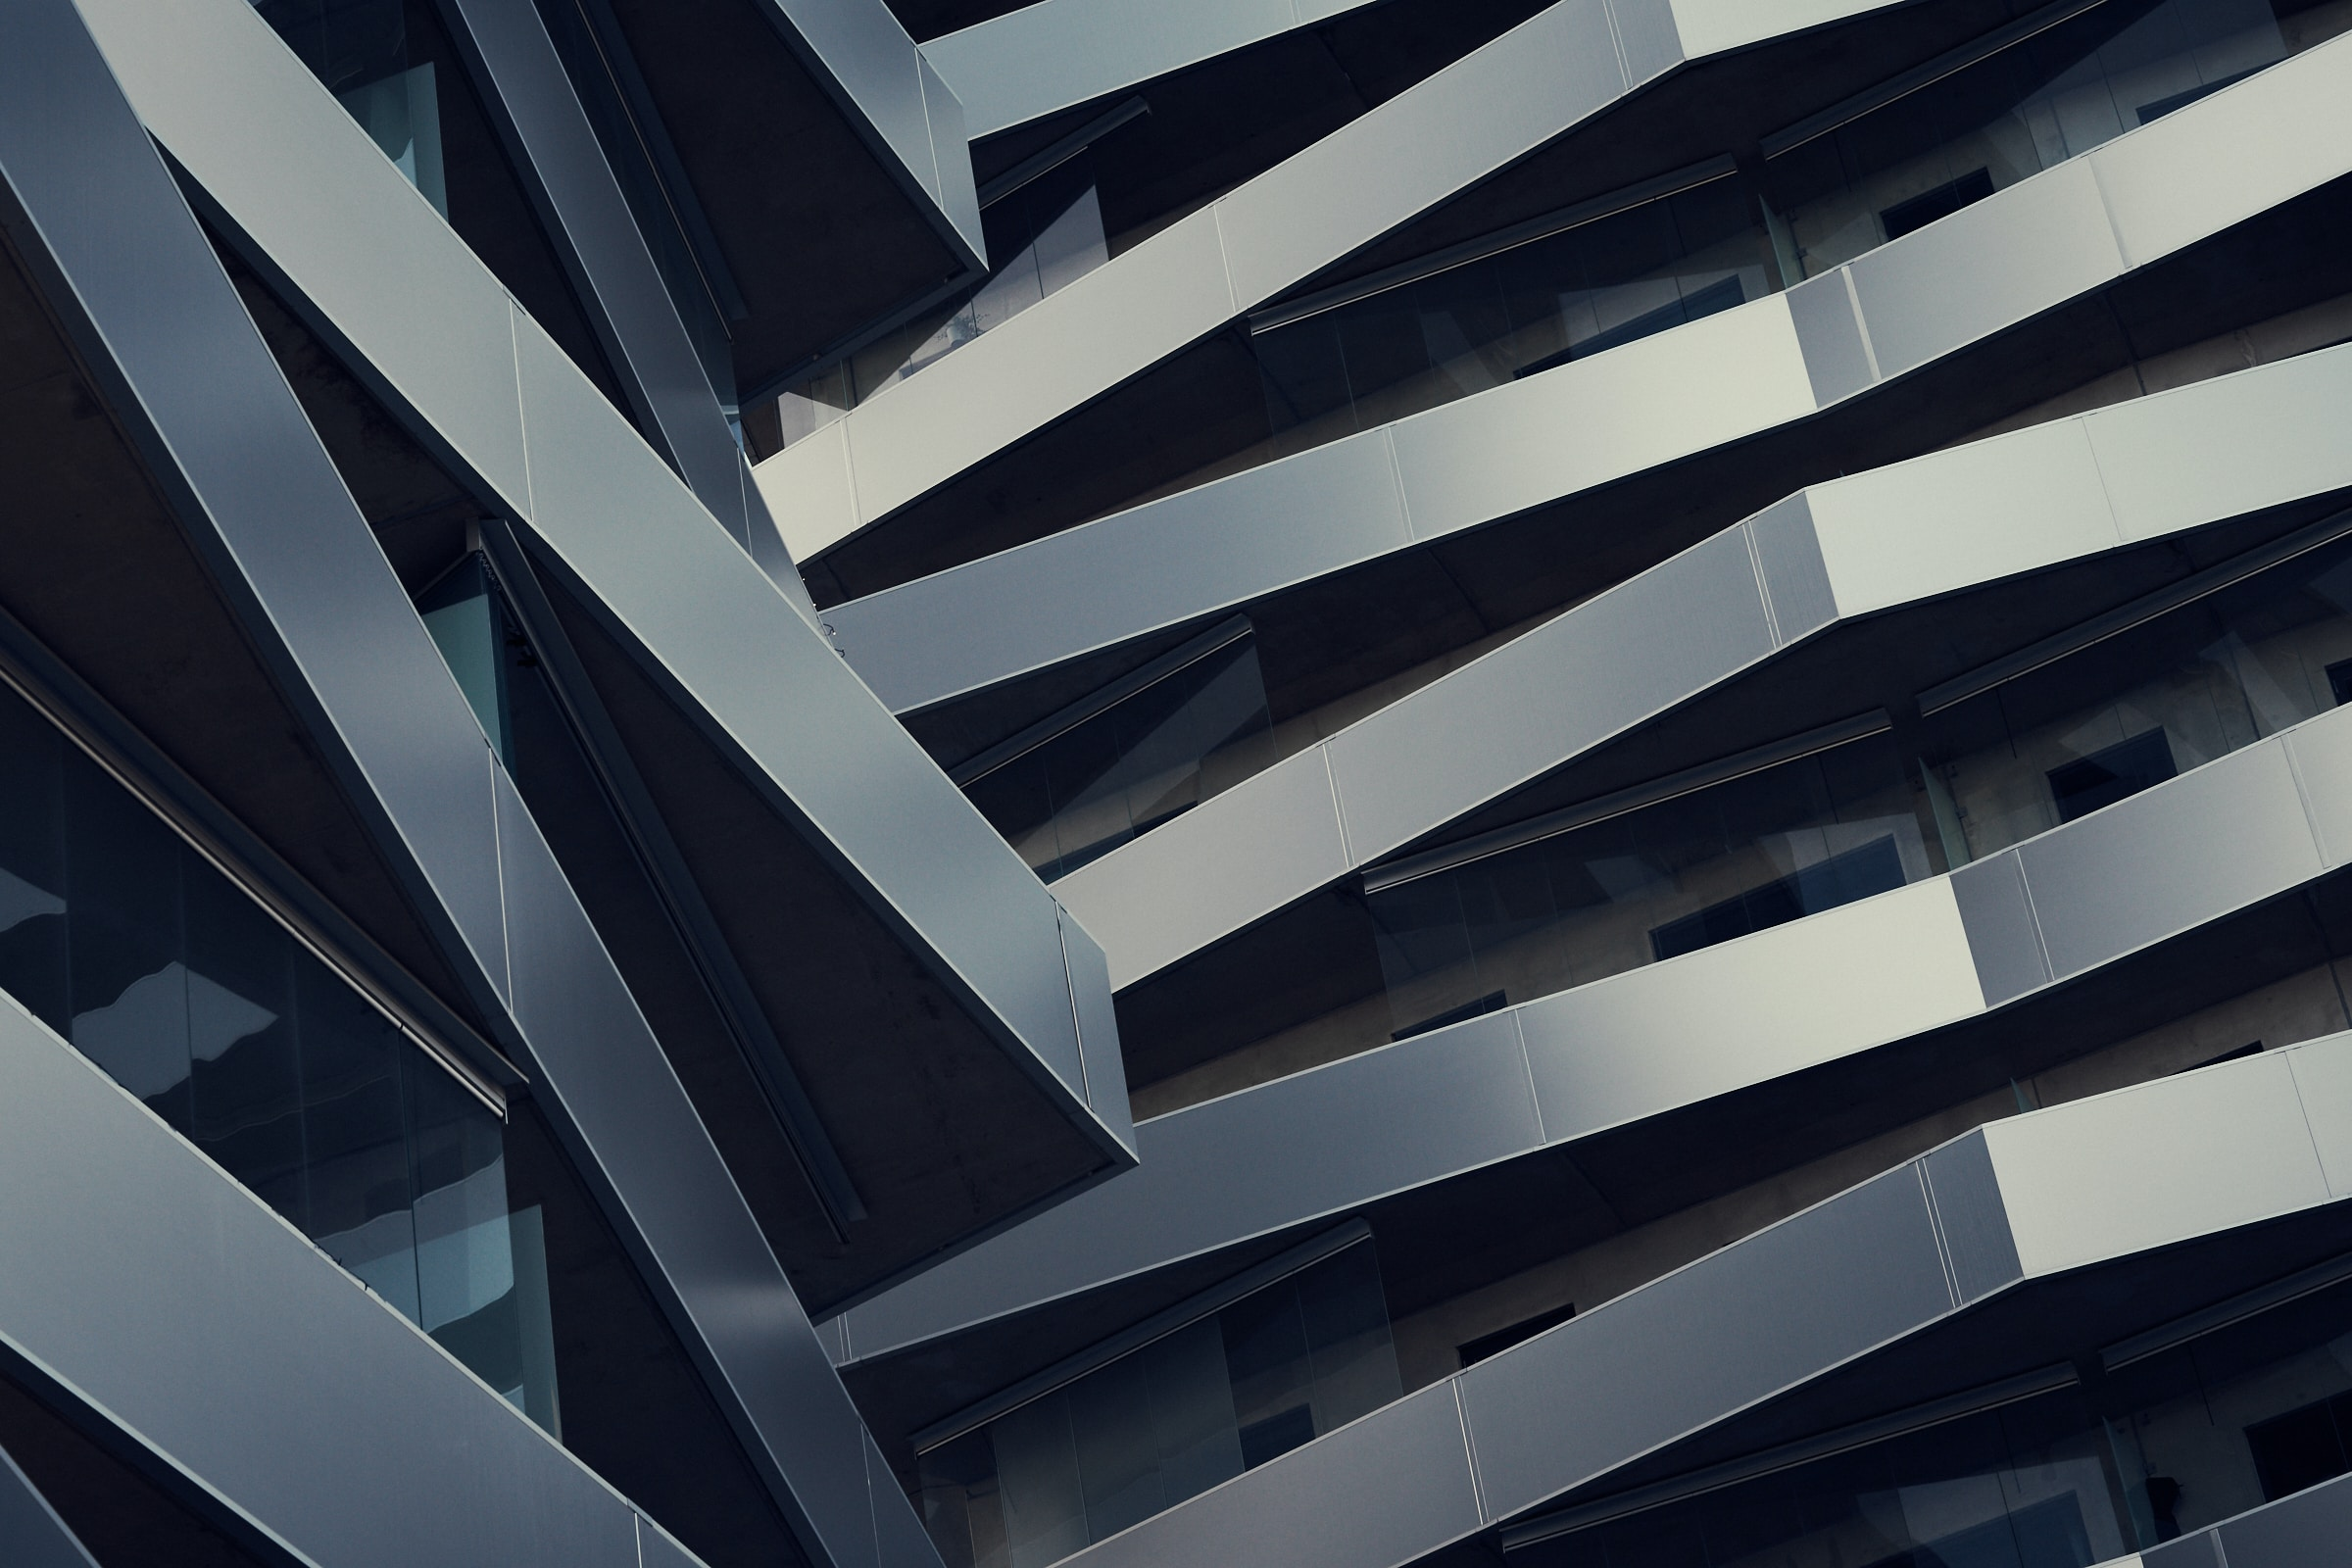 Balconies outside of a building made of steel that looks like it has been folded. The angle of the shot makes it all look very disorganized.